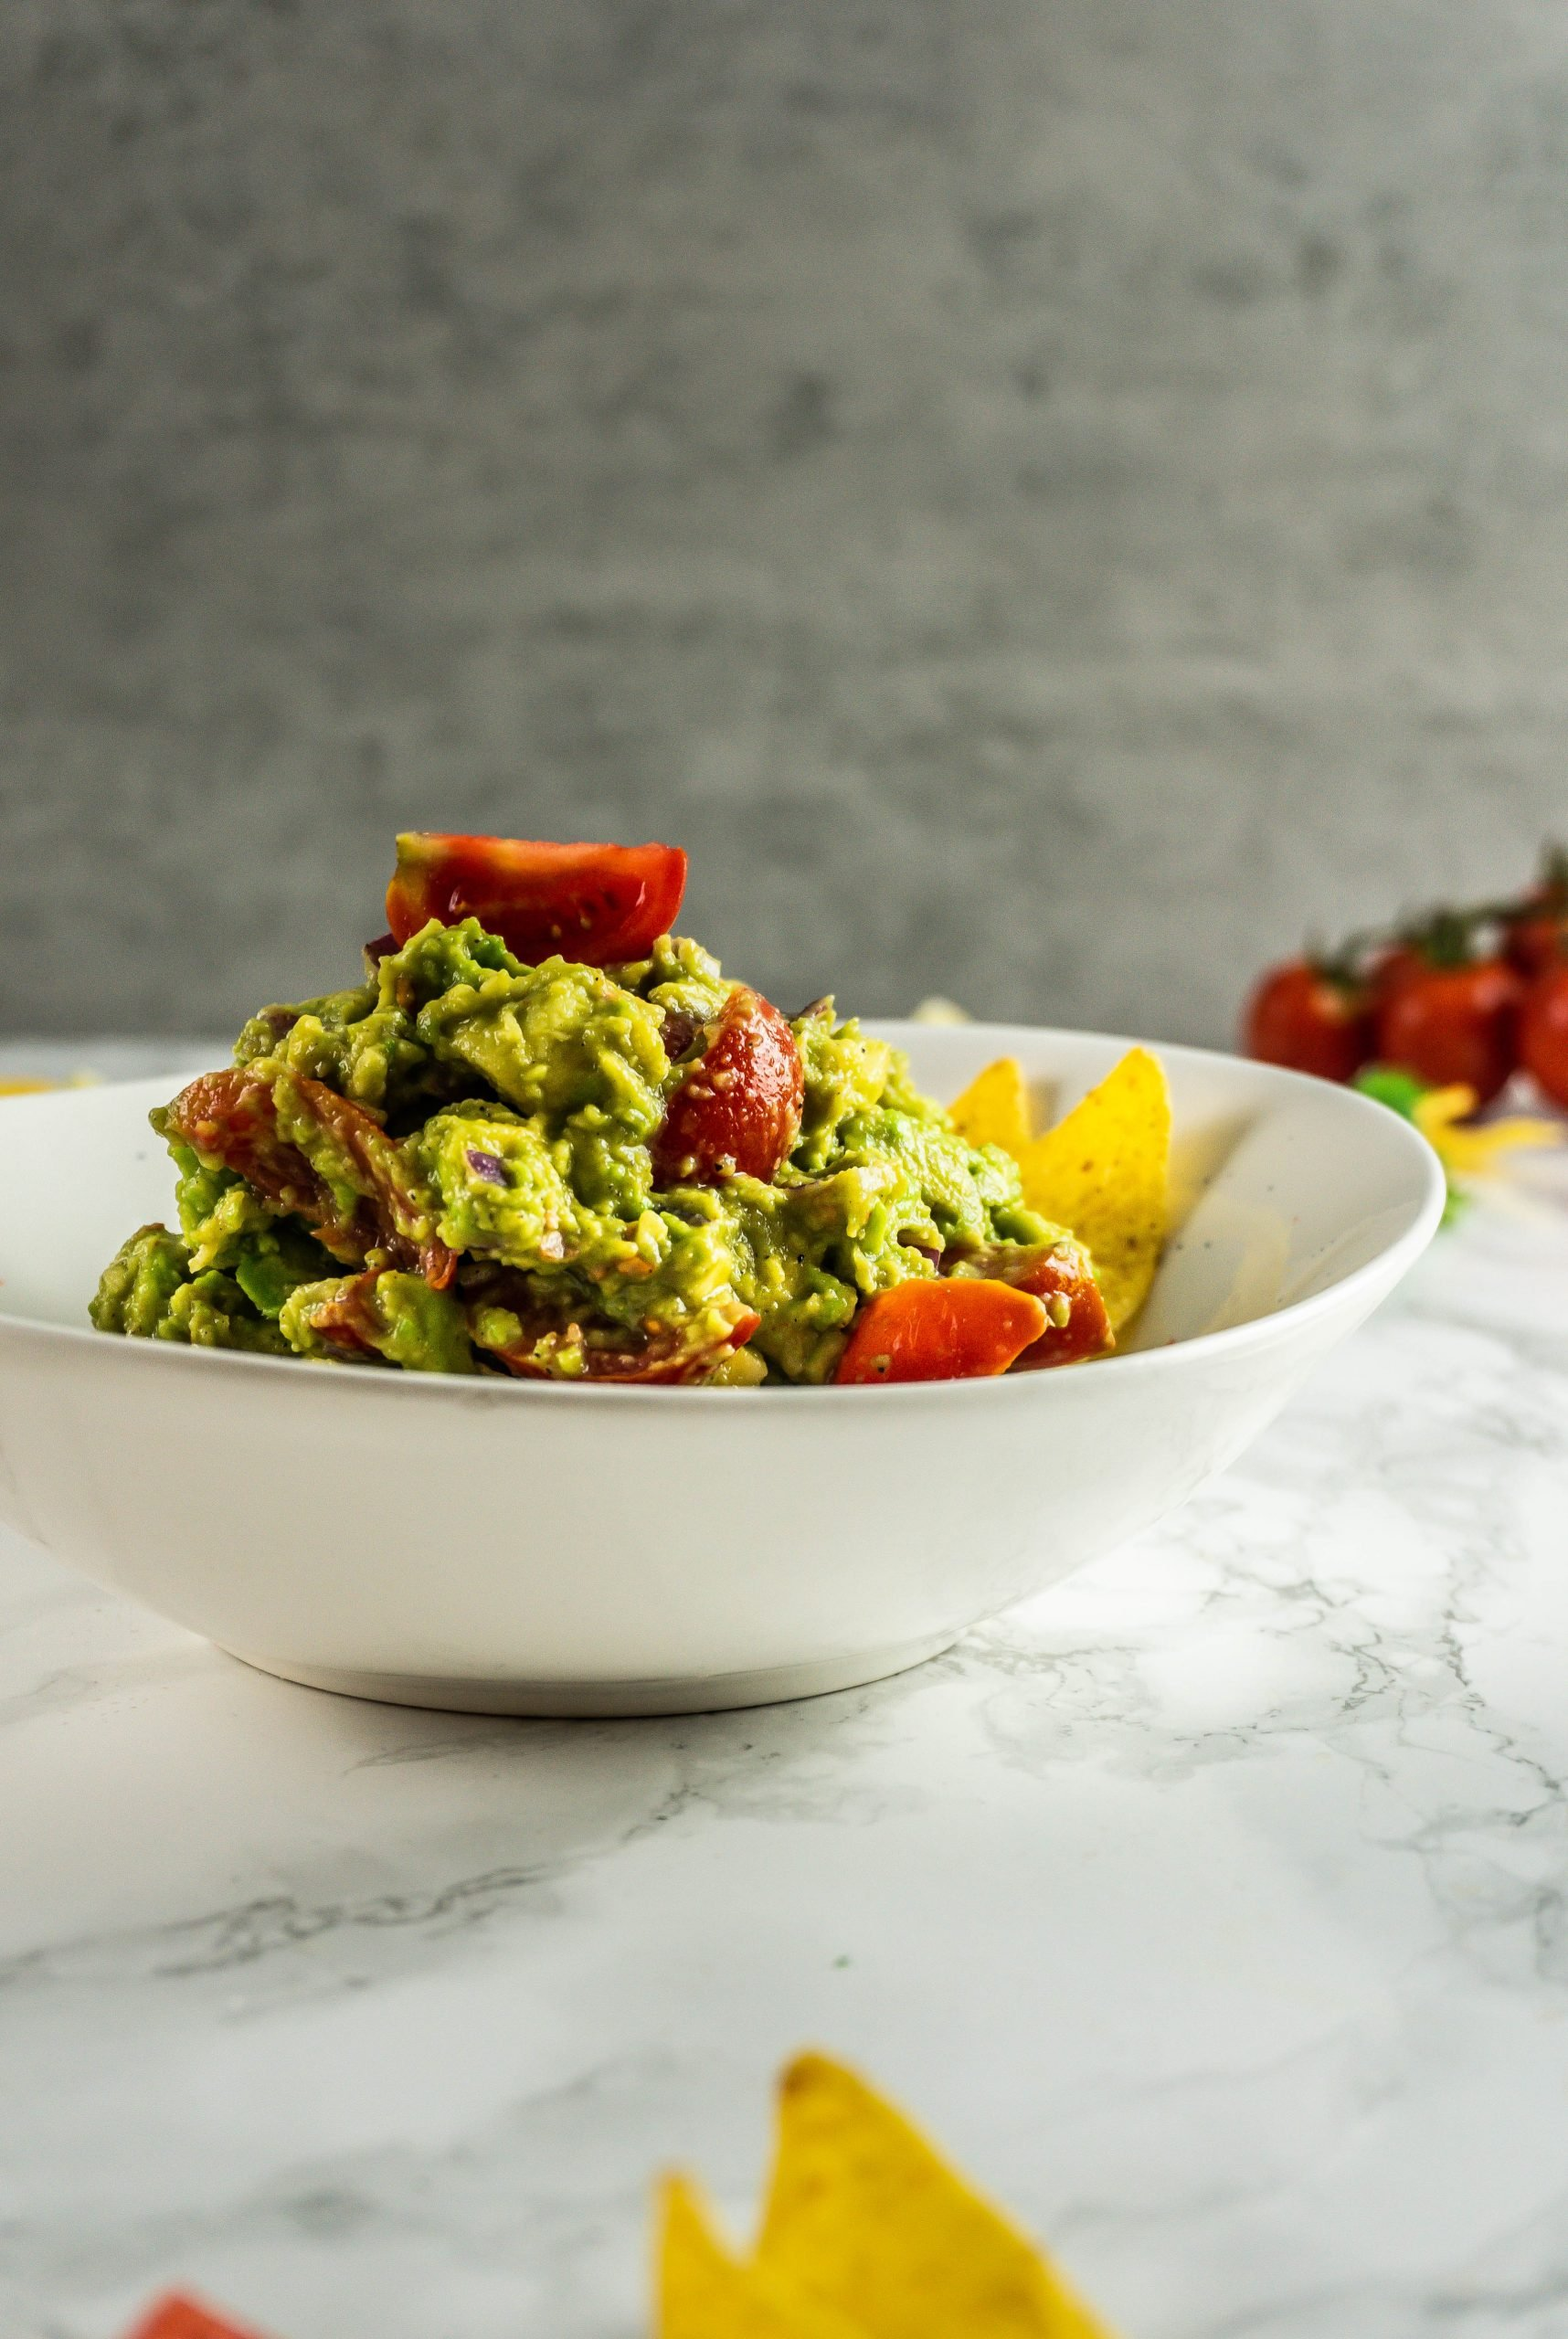 My Dear Friend's Best Guacamole in a bowl with tortilla chips, halved tomatoes, and cilantro scattered around, photographed from a side angle